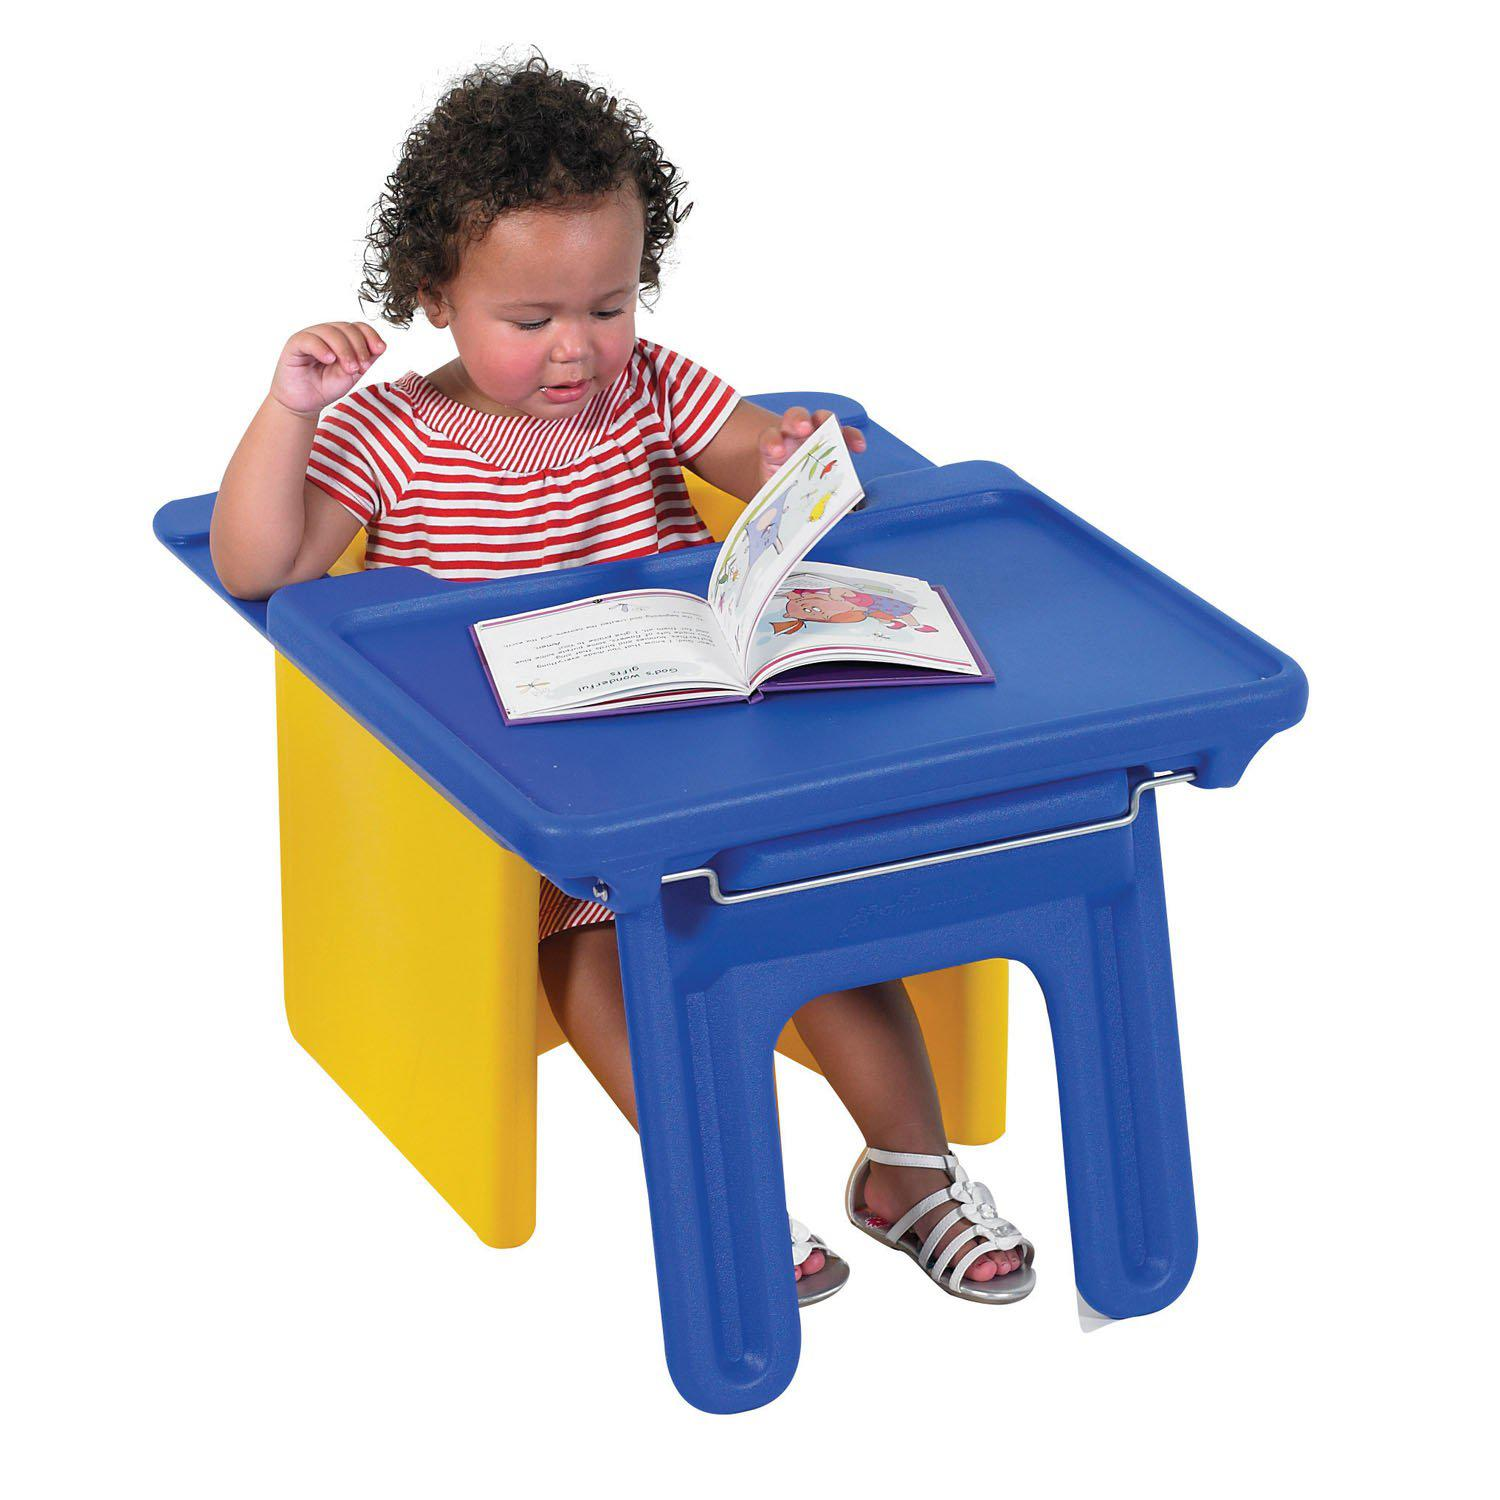 Edutray for Cube Chairs